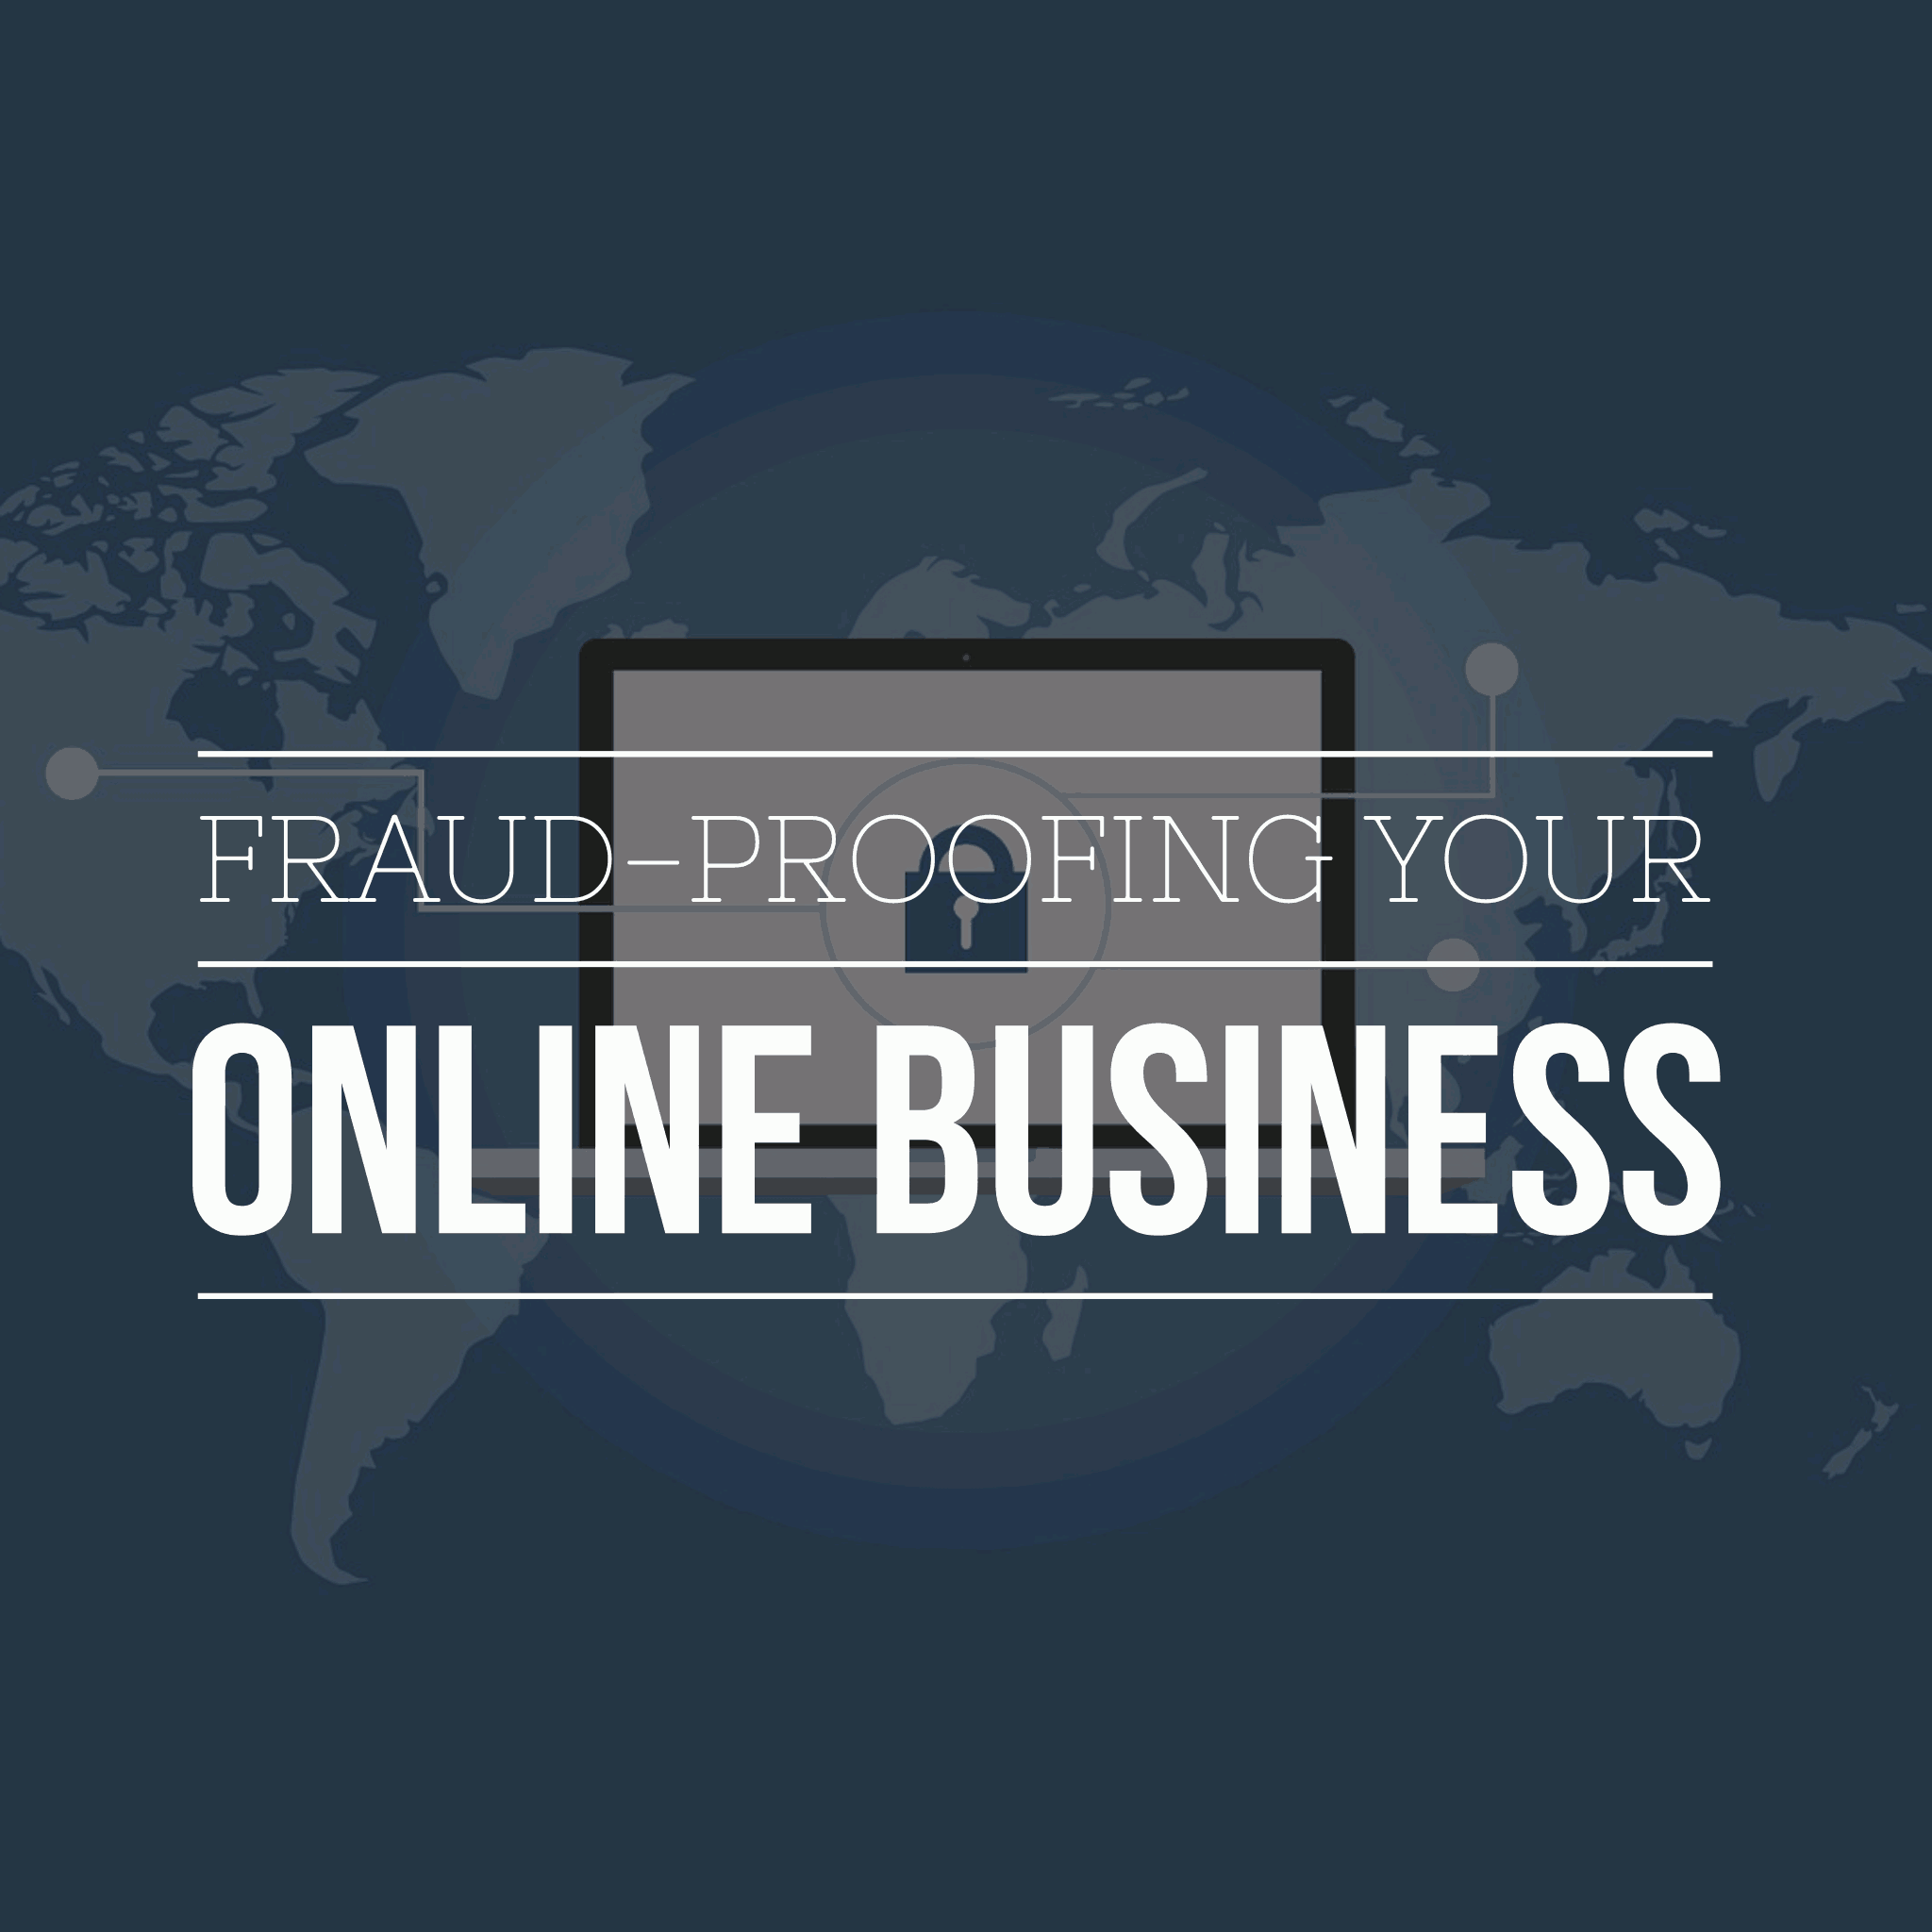 5 Methods for Fraud-Proofing Your Online Business